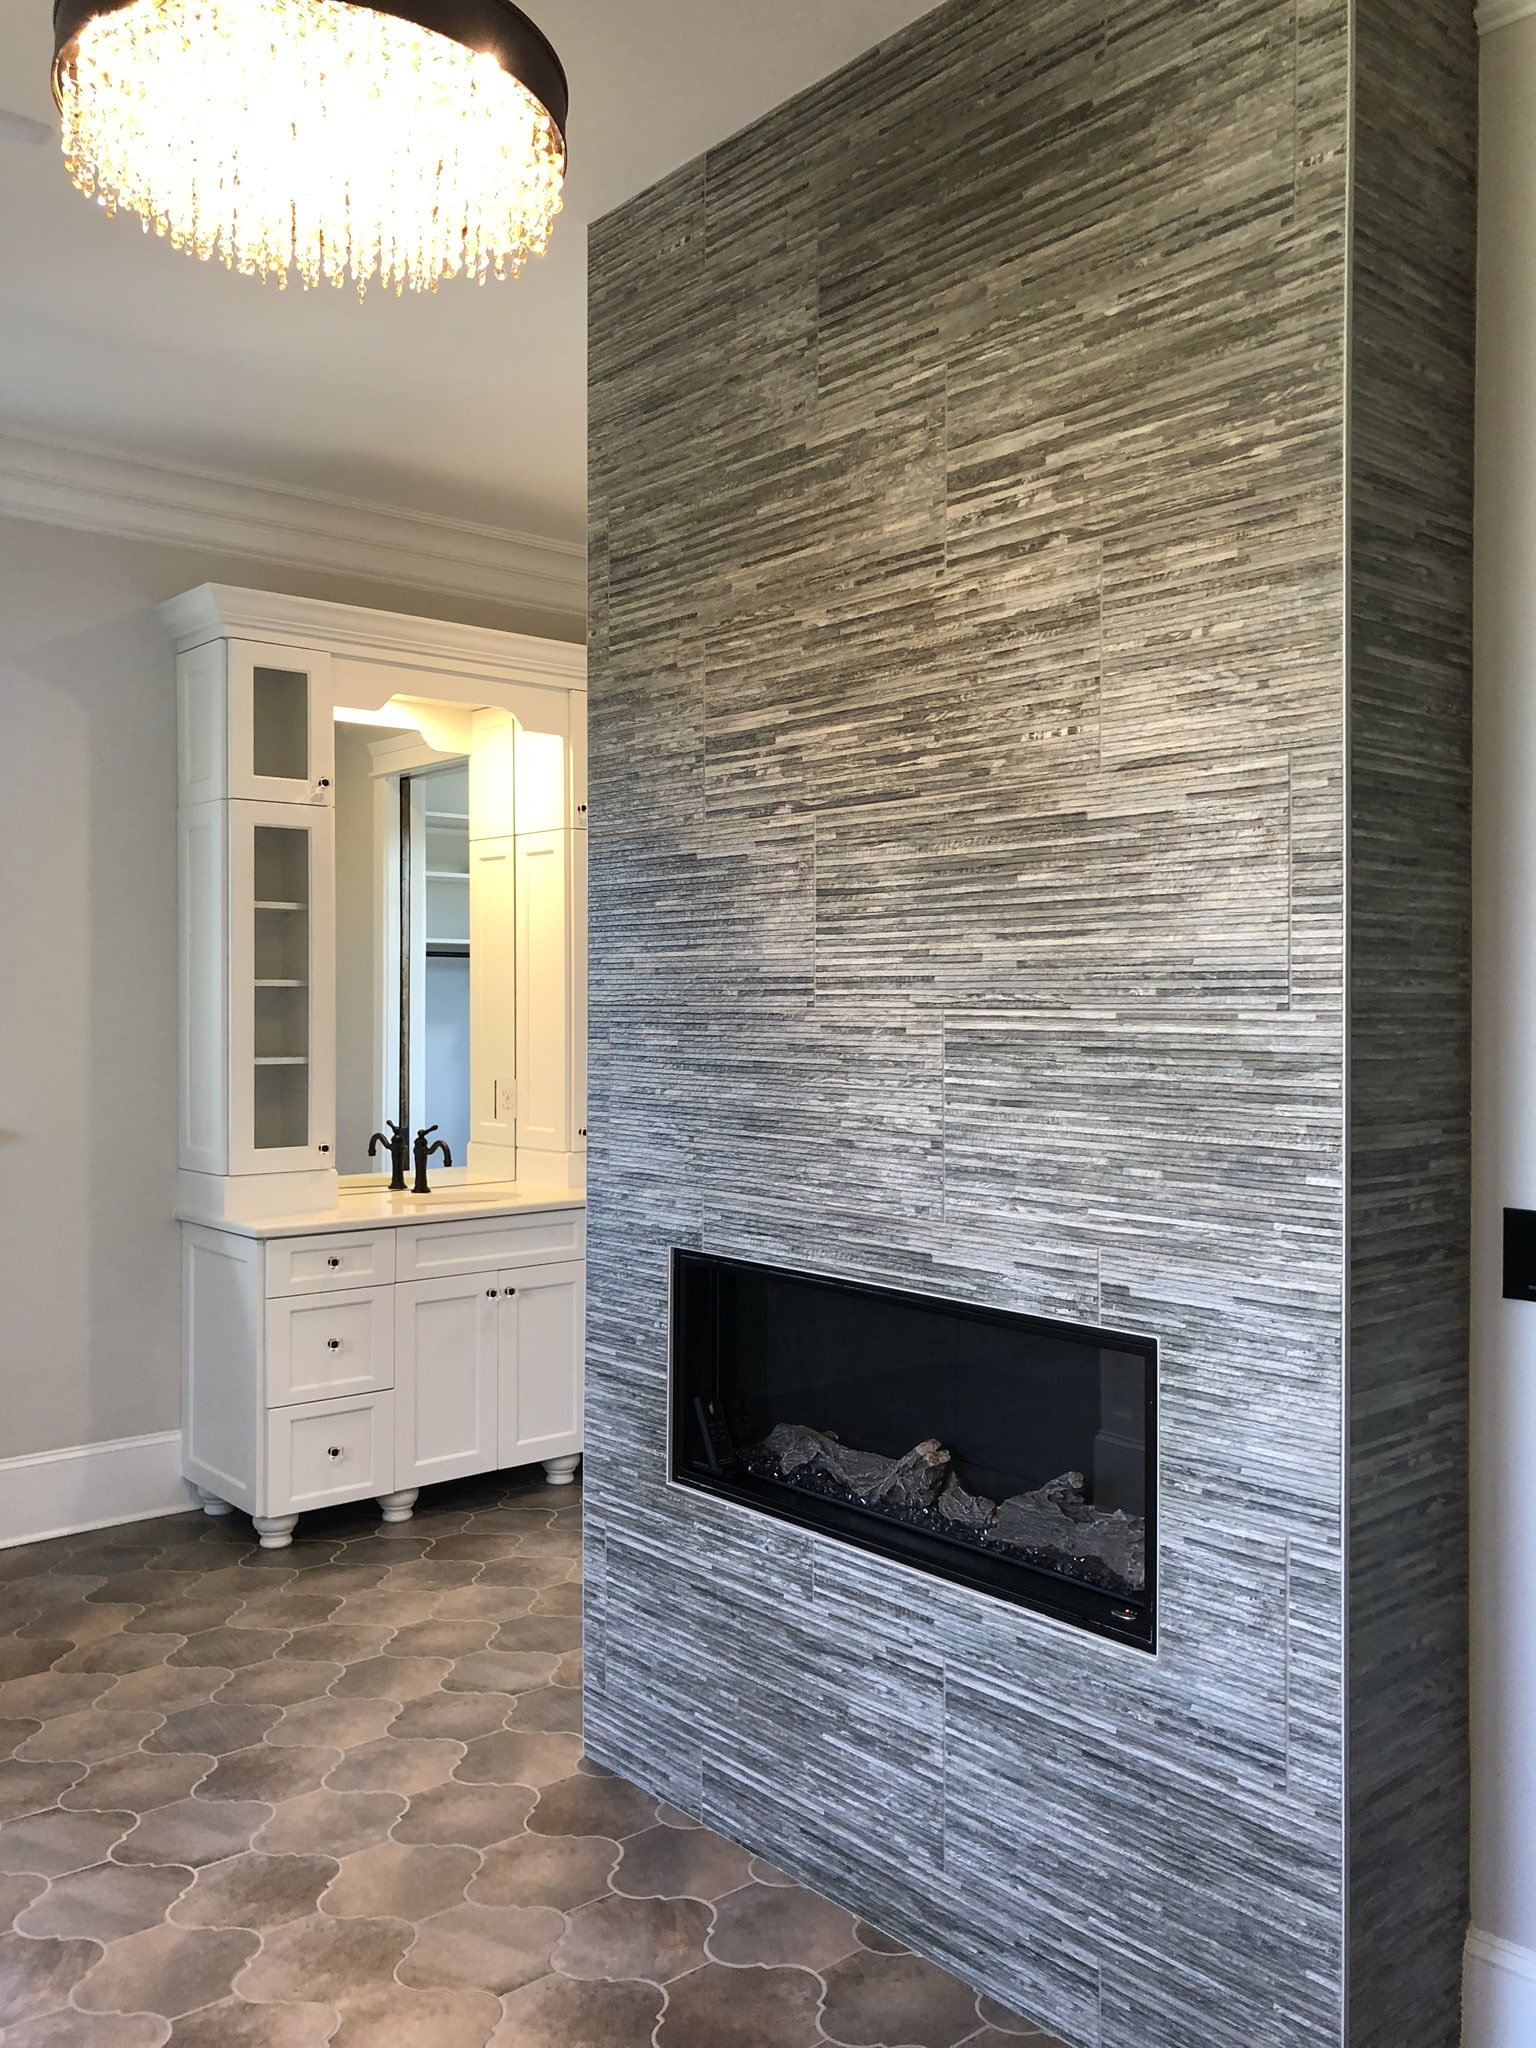 Master Bathroom - the amazing arabesque floor tile and gorgeous chandelier contrast perfectly with the old wood look of the tiled fireplace.